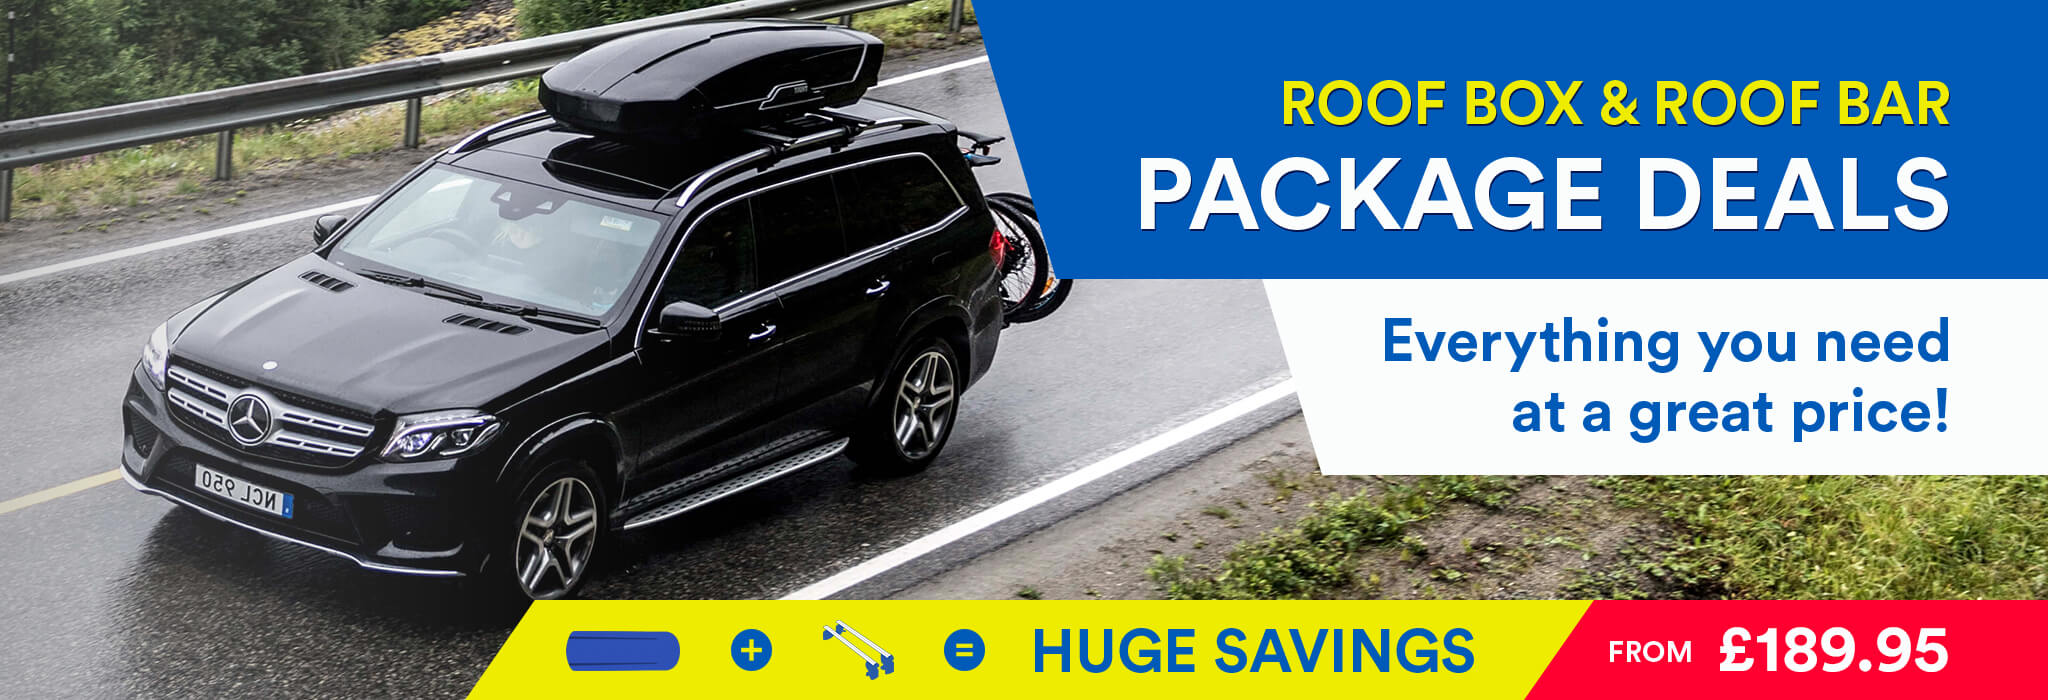 Roofbox package deals: save money by buying roof bars & a roof box